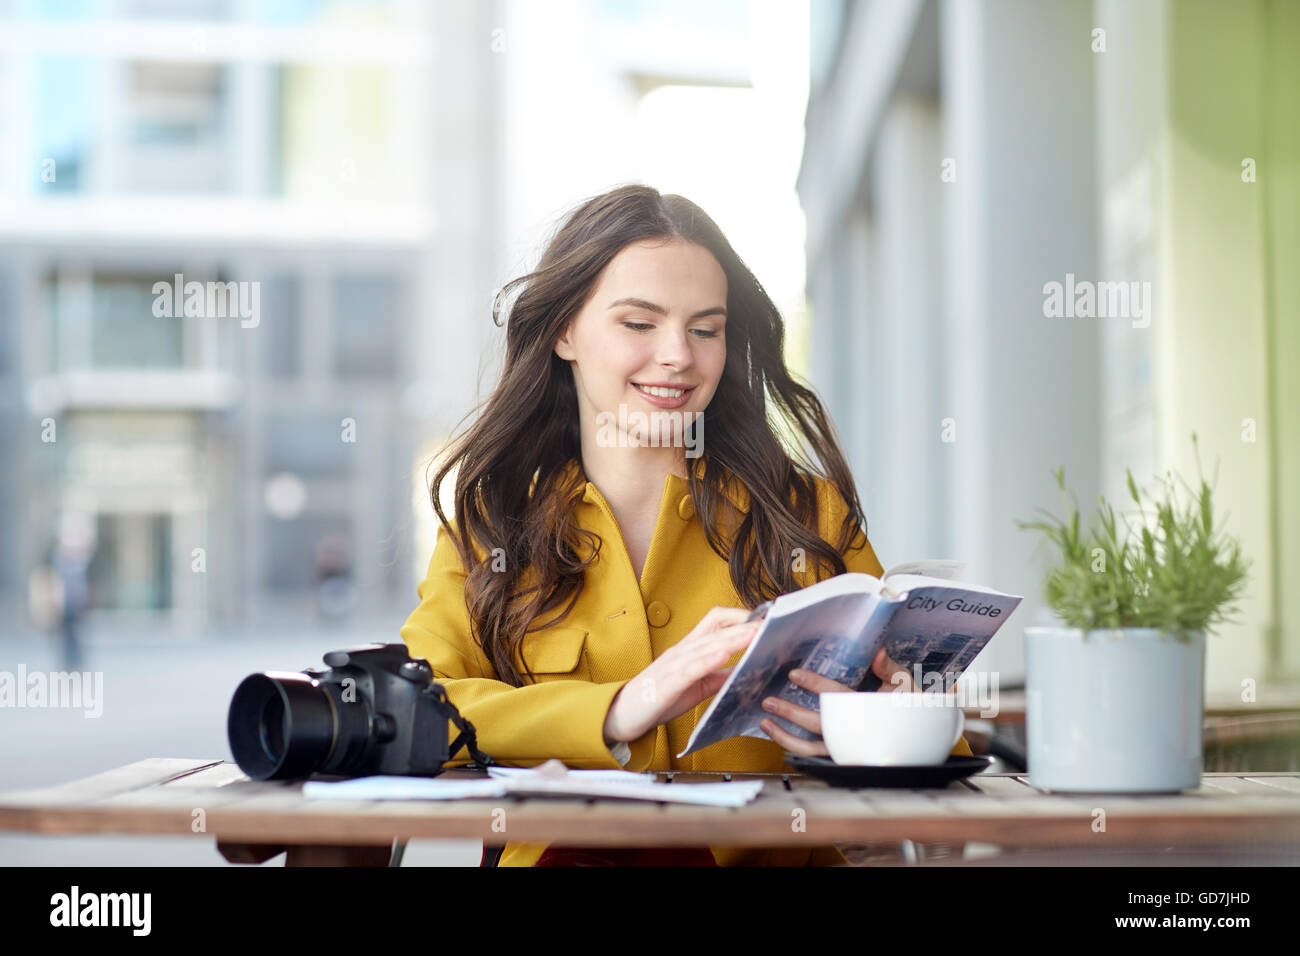 happy woman with guide drinking cocoa at city cafe - Stock Image